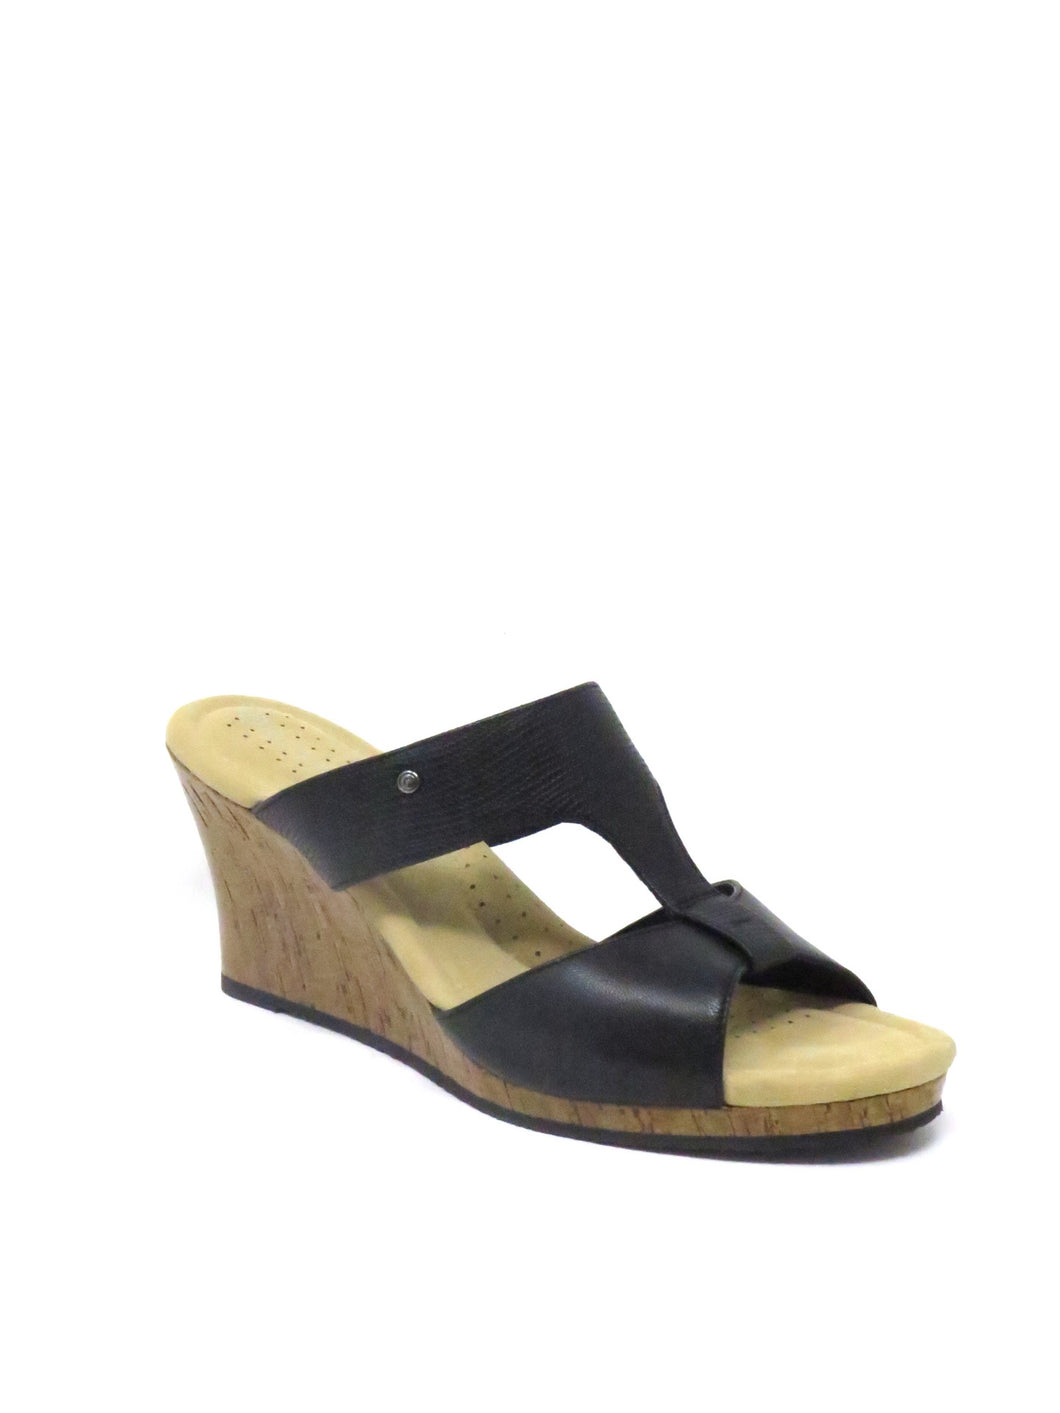 Rockport | K51501 | Emily New Slide Sandal | Black